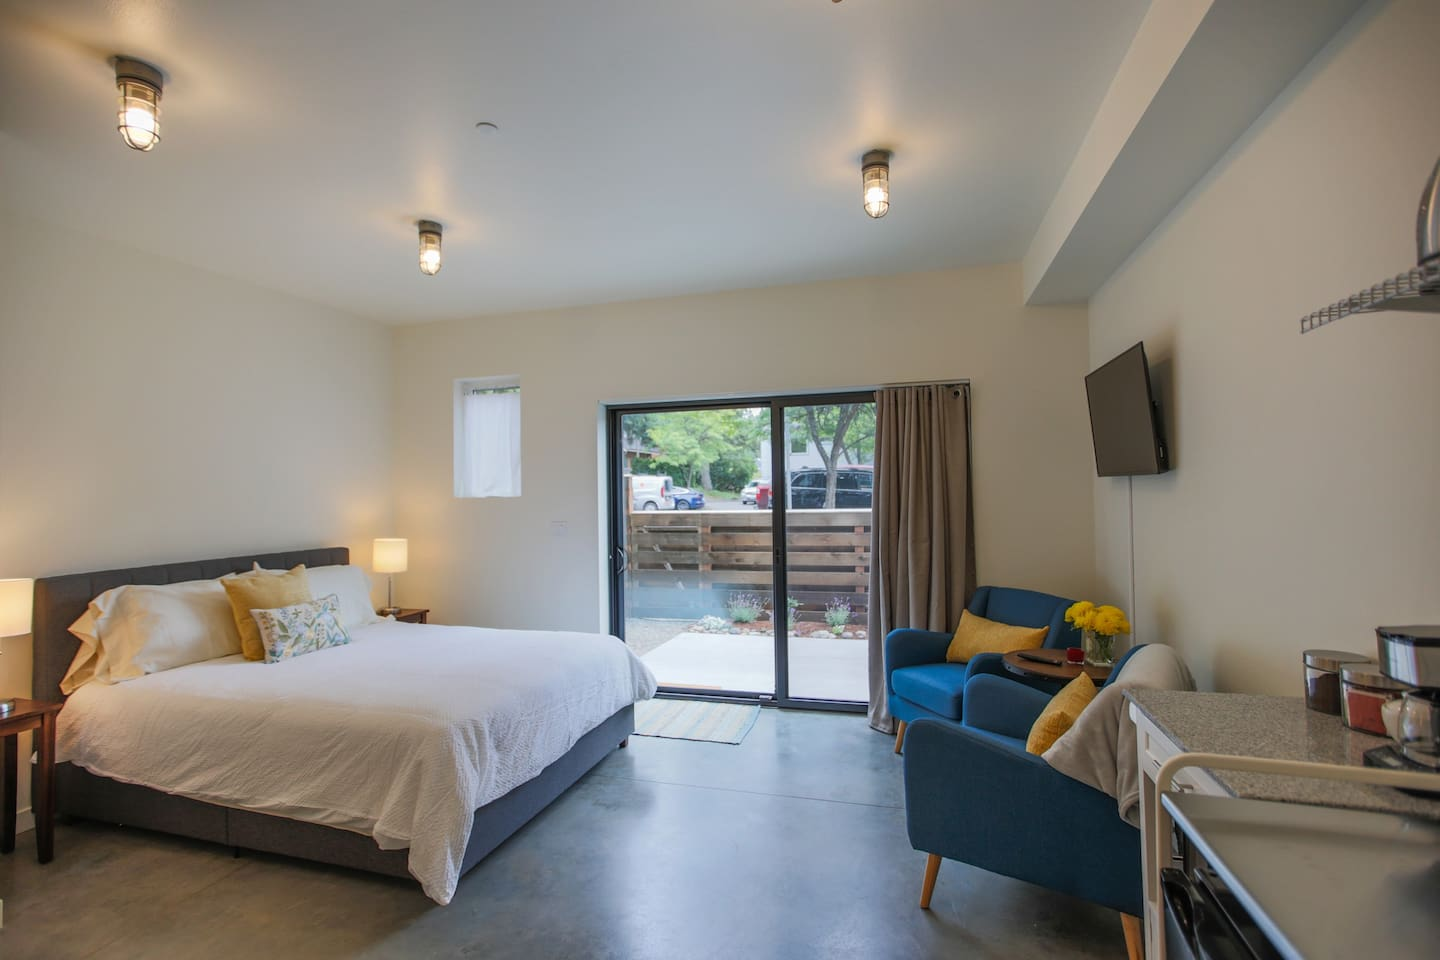 suite little space perfect to explore Winslow and surrounding area